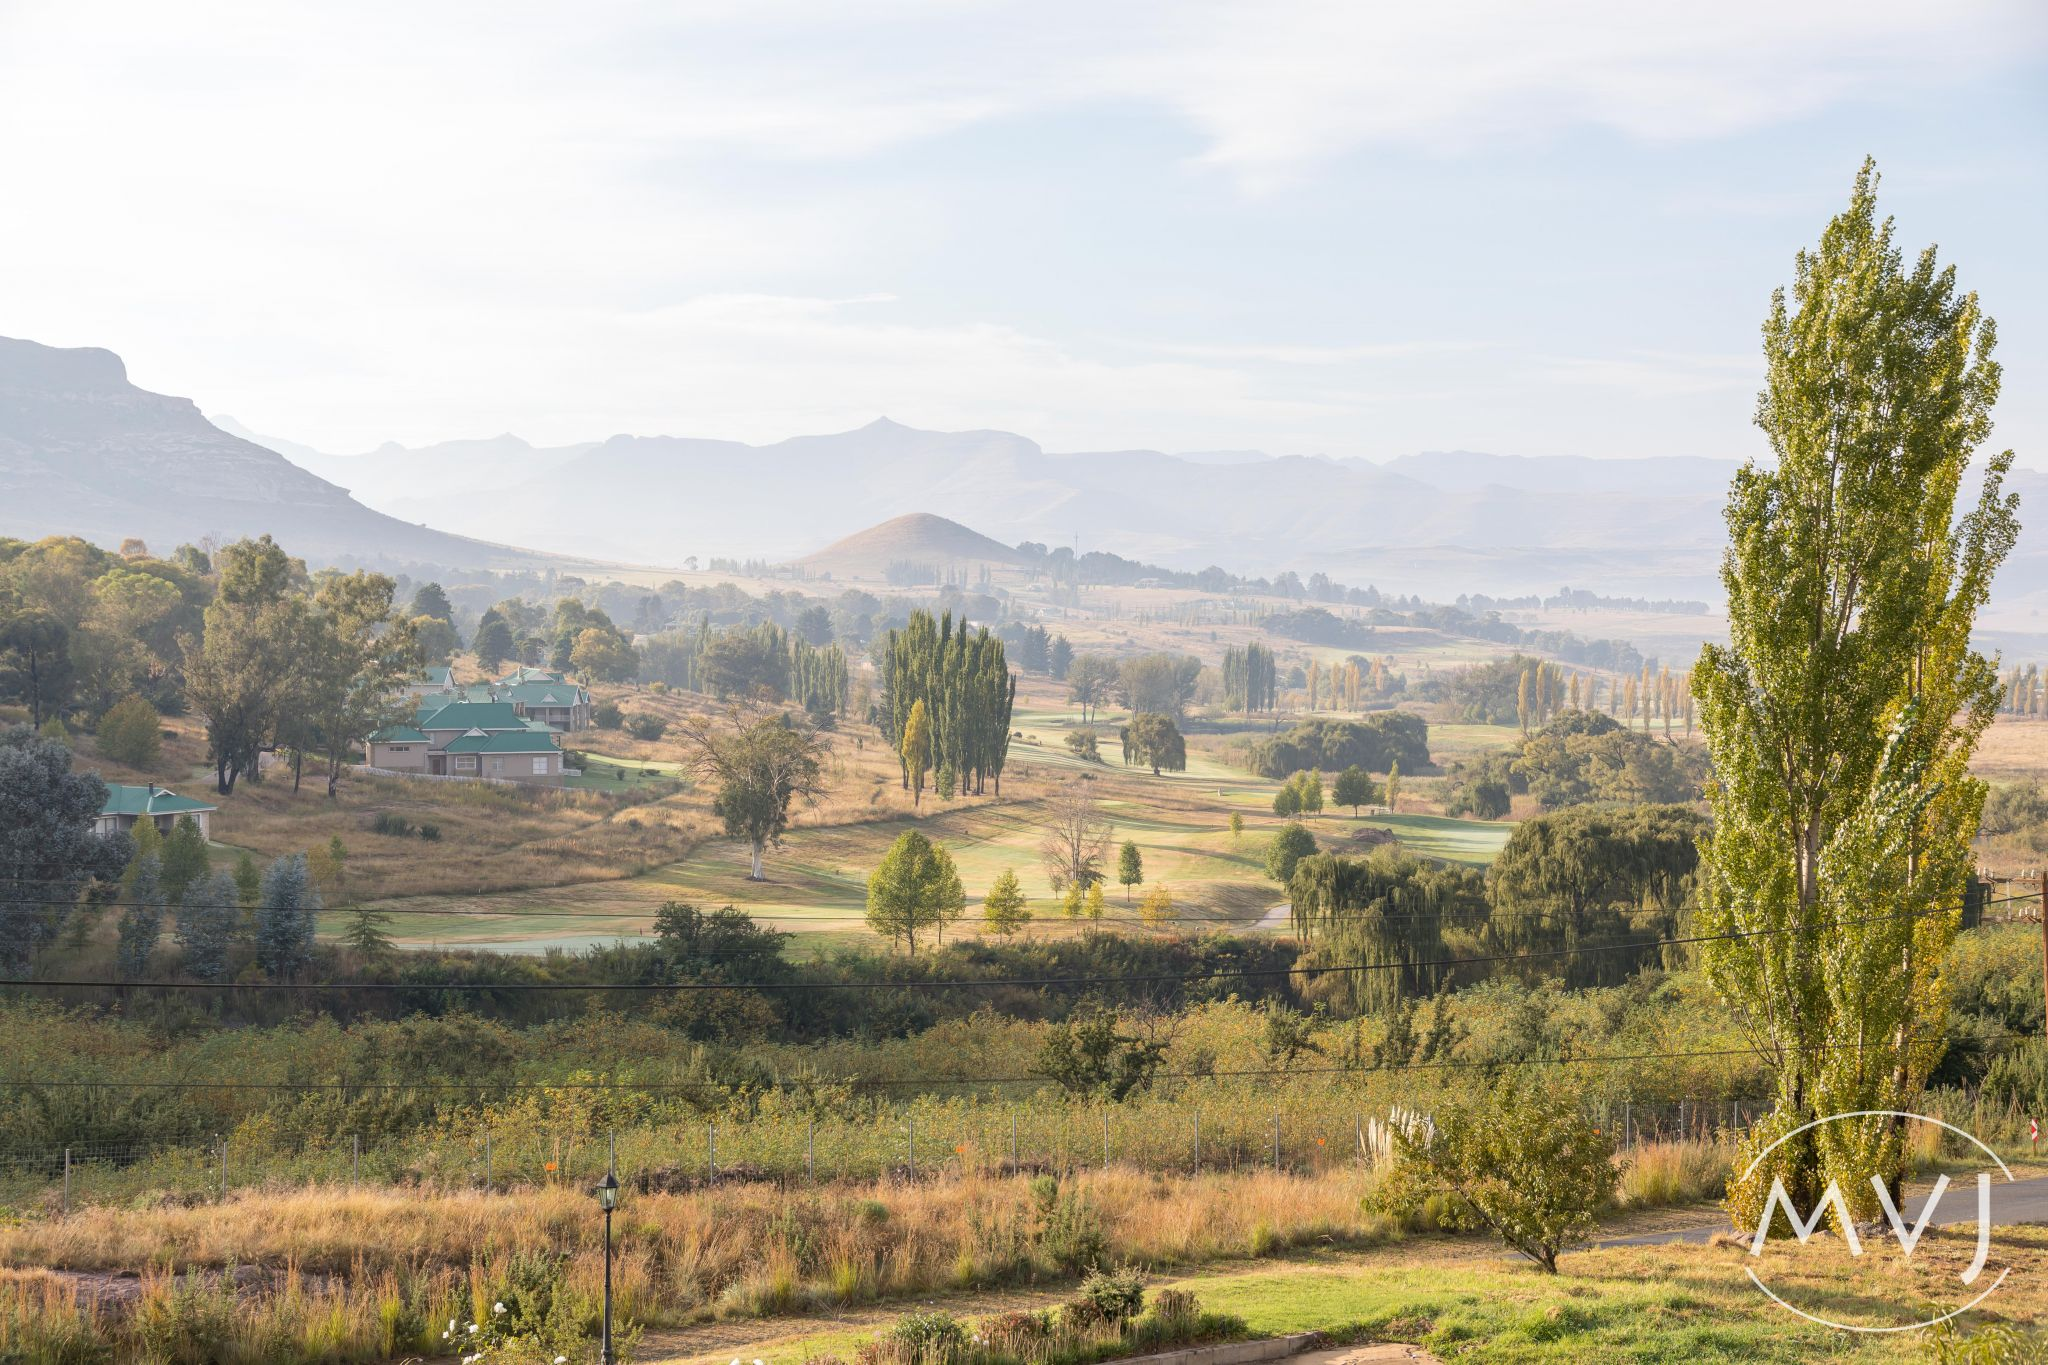 Early morning at Clarens, South Africa, South Africa